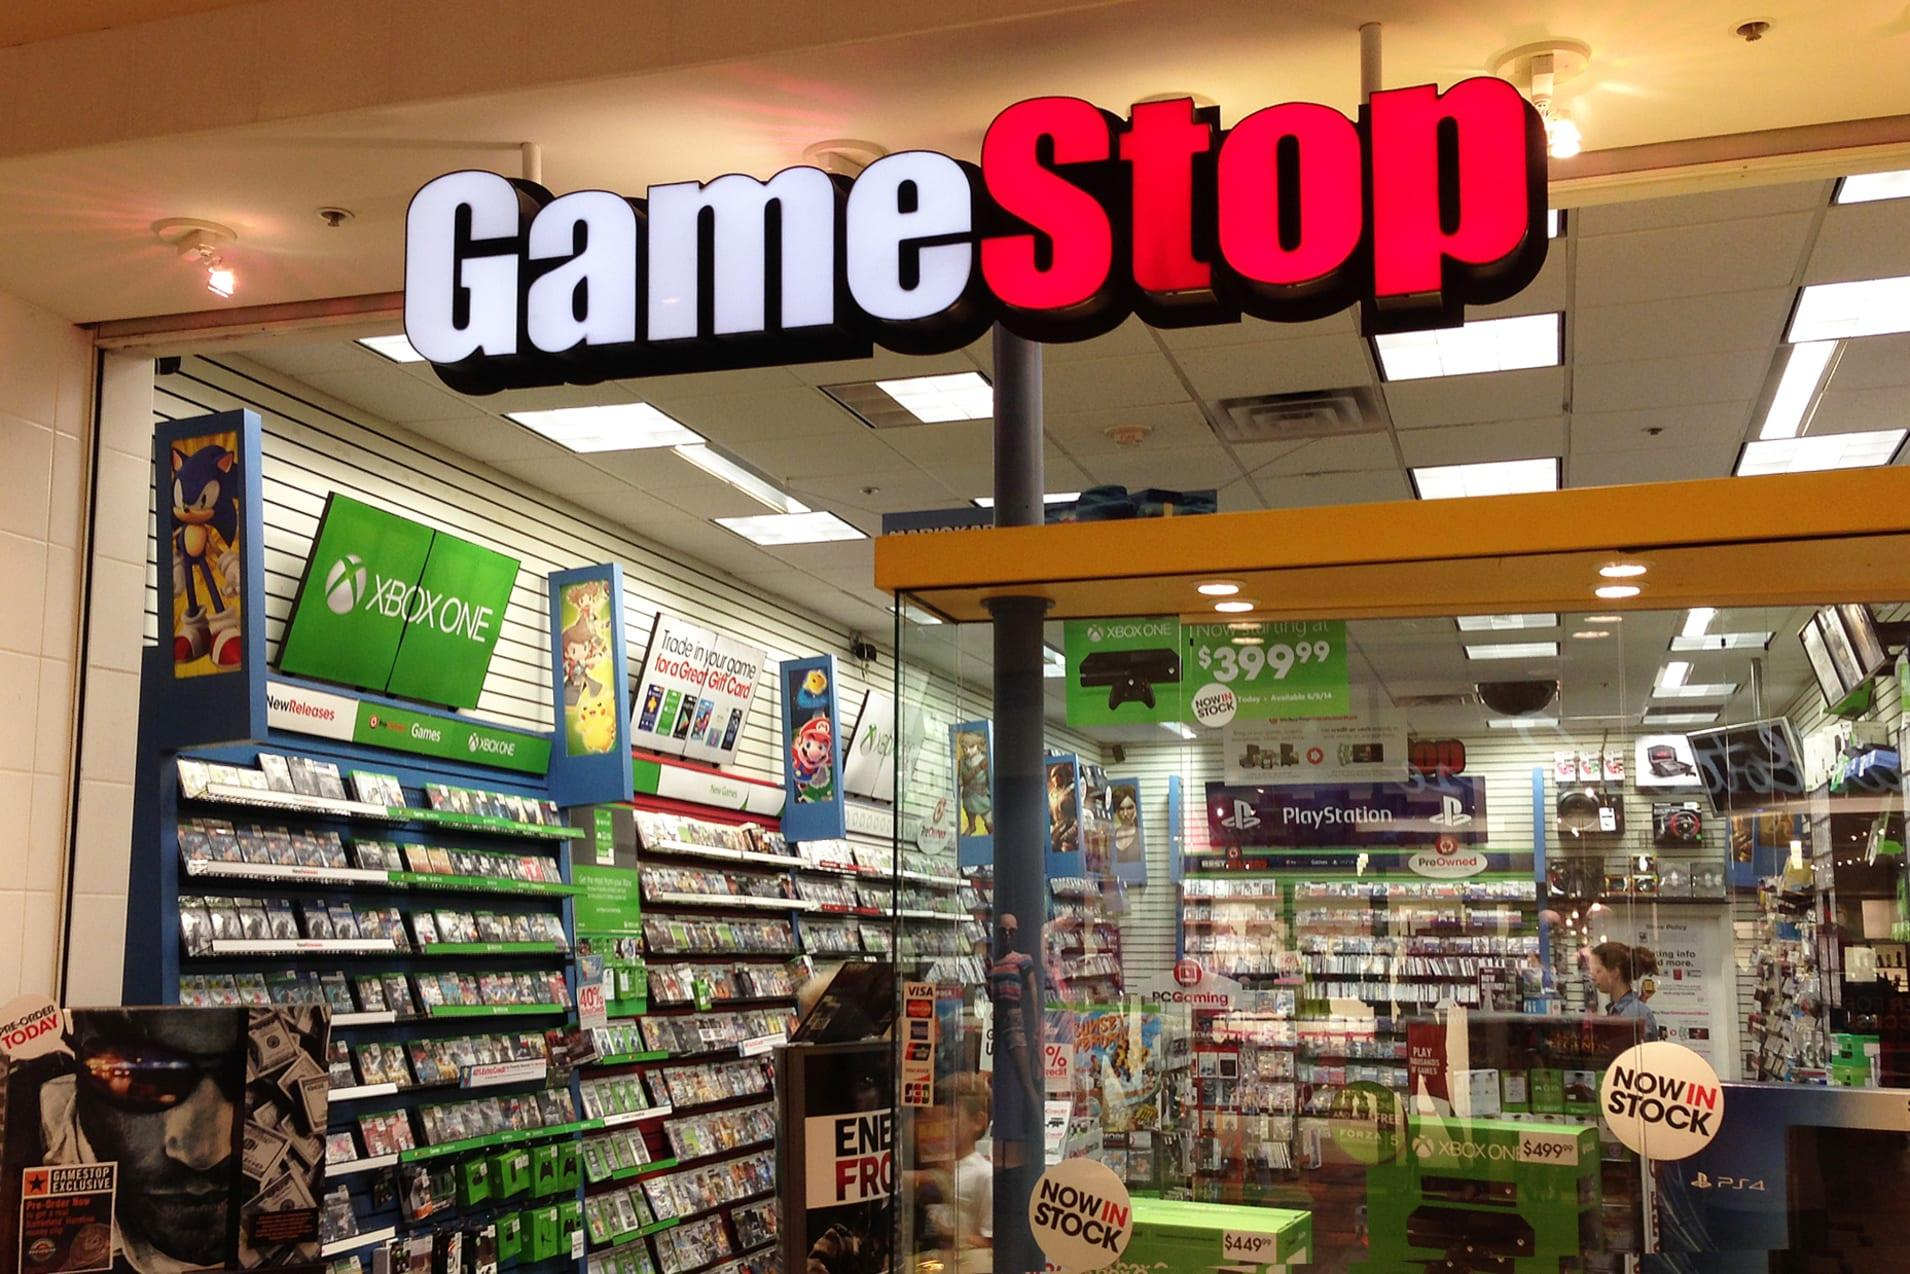 GameStop has announced that it will be permanently closing down over 300 stores this year in an effort to clean up a overly dense amount of brick and mortar locations. The news arrived by way of the company's latest earnings call where it was also revealed that 321 stores were closed last fiscal year and they plan to meet or exceed those closure numbers this year. Currently GameStop has 5,500 retail locations operating across the US.